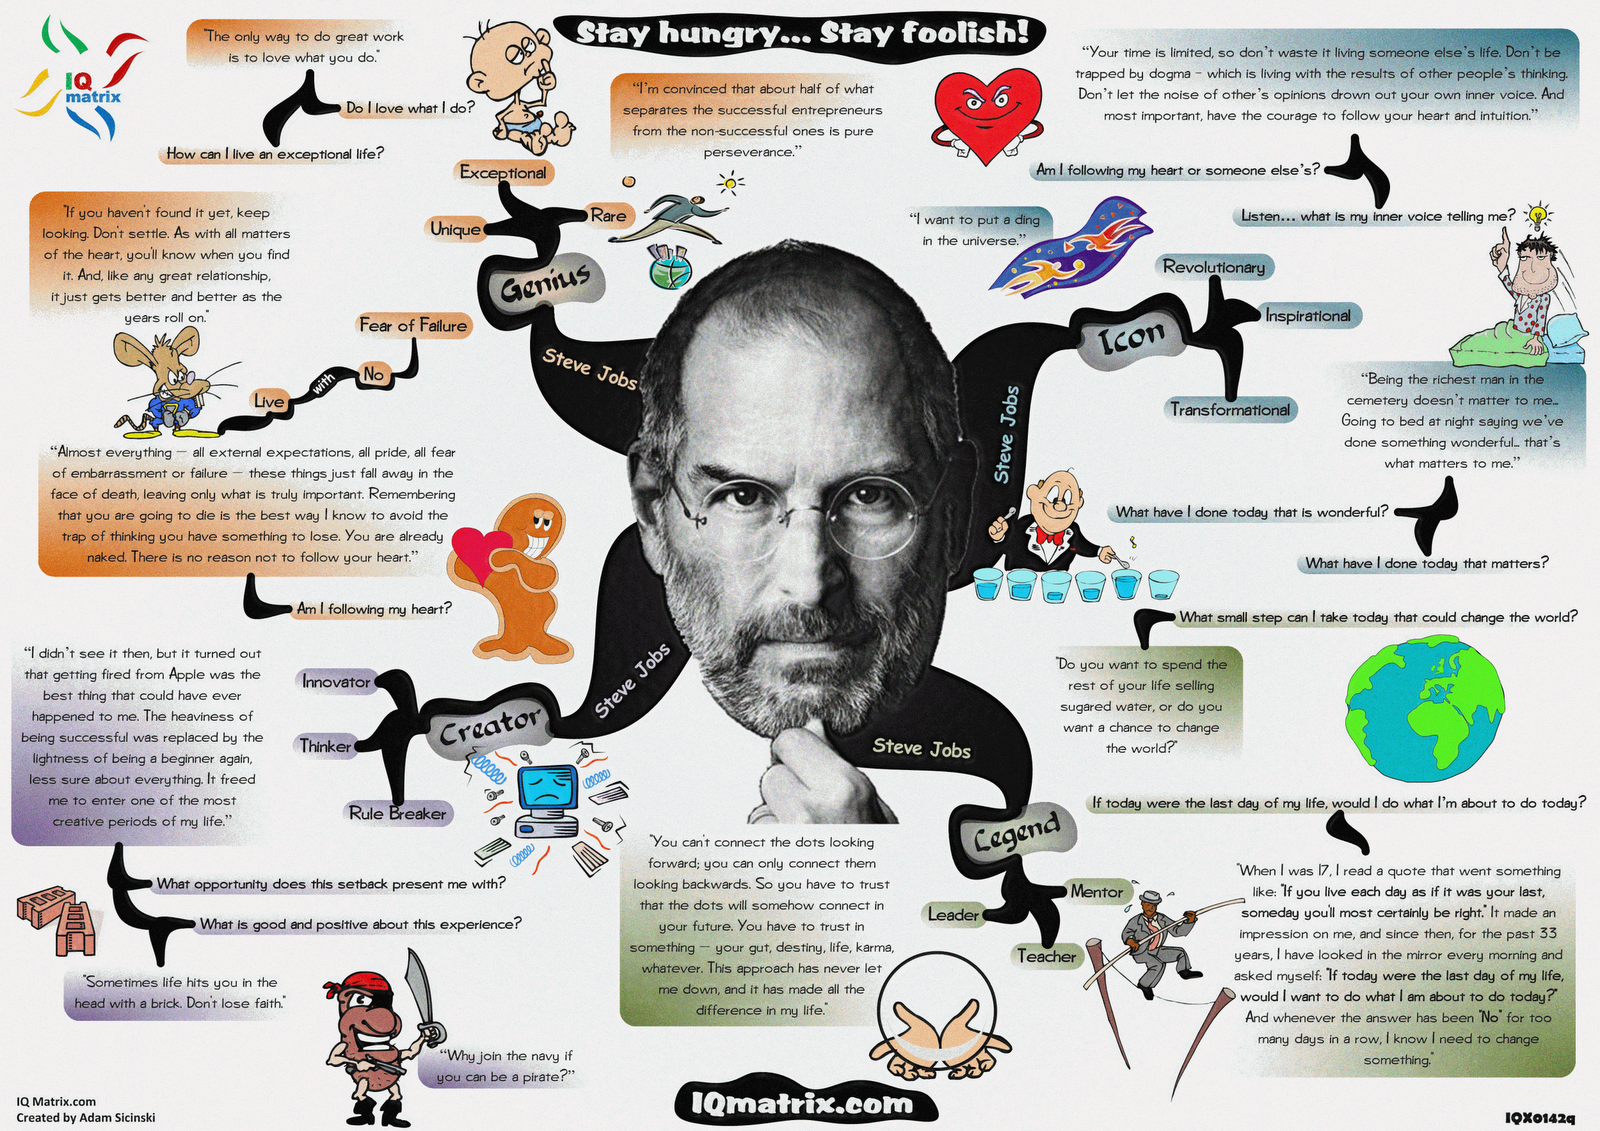 steve jobs a life of innovation invention chestnut esl efl from